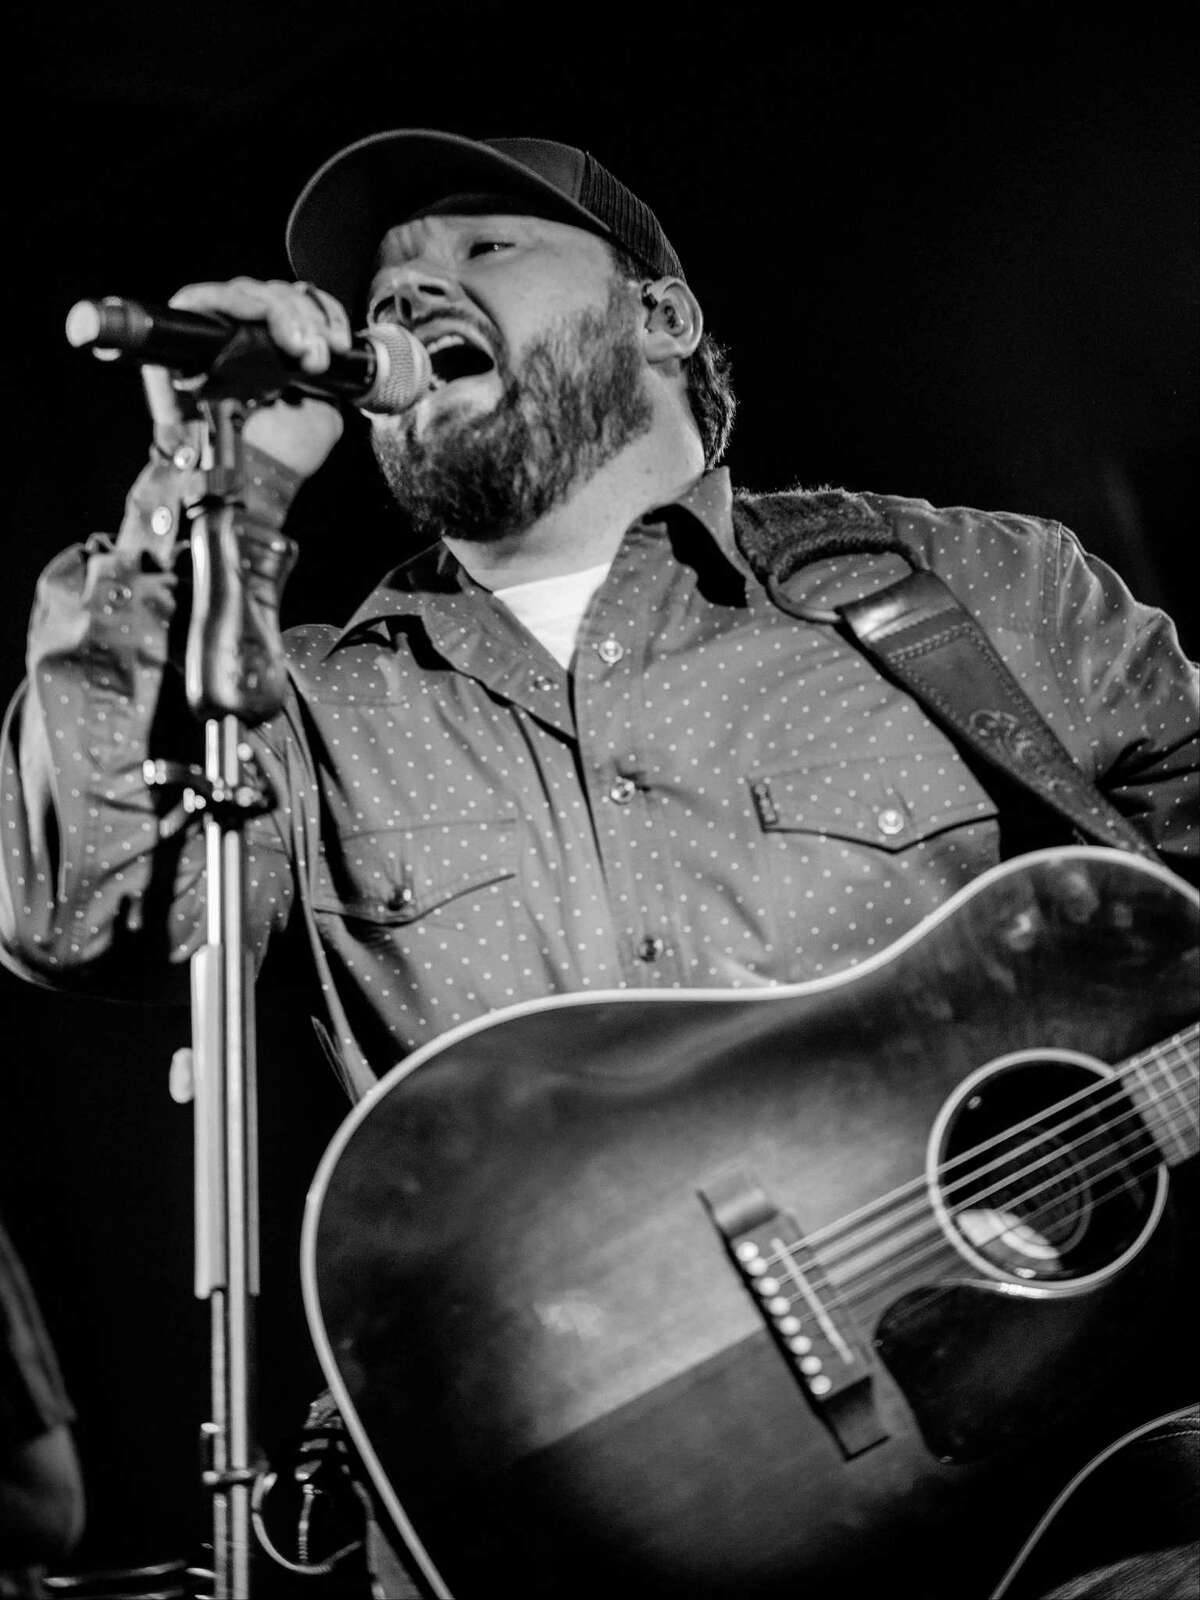 Country singer Cody Wayne will be featured this Saturday, Sept. 25 at a Tailgate for the Troops, an inaugural USO event taking place from 4 to 9 p.m. at The Pavilion at Cowboy City in Humble.